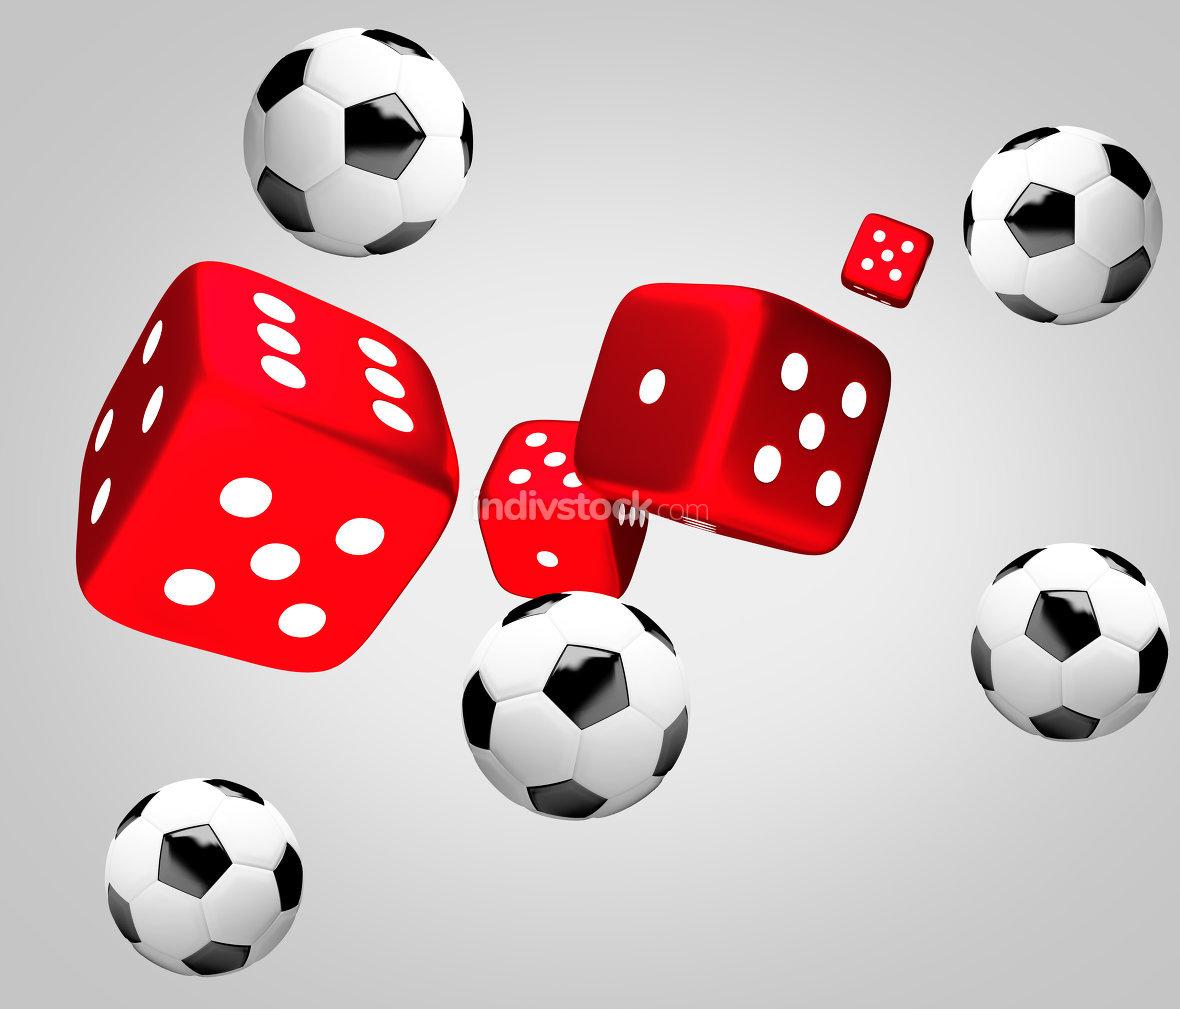 red dices and soccer balls 3d render